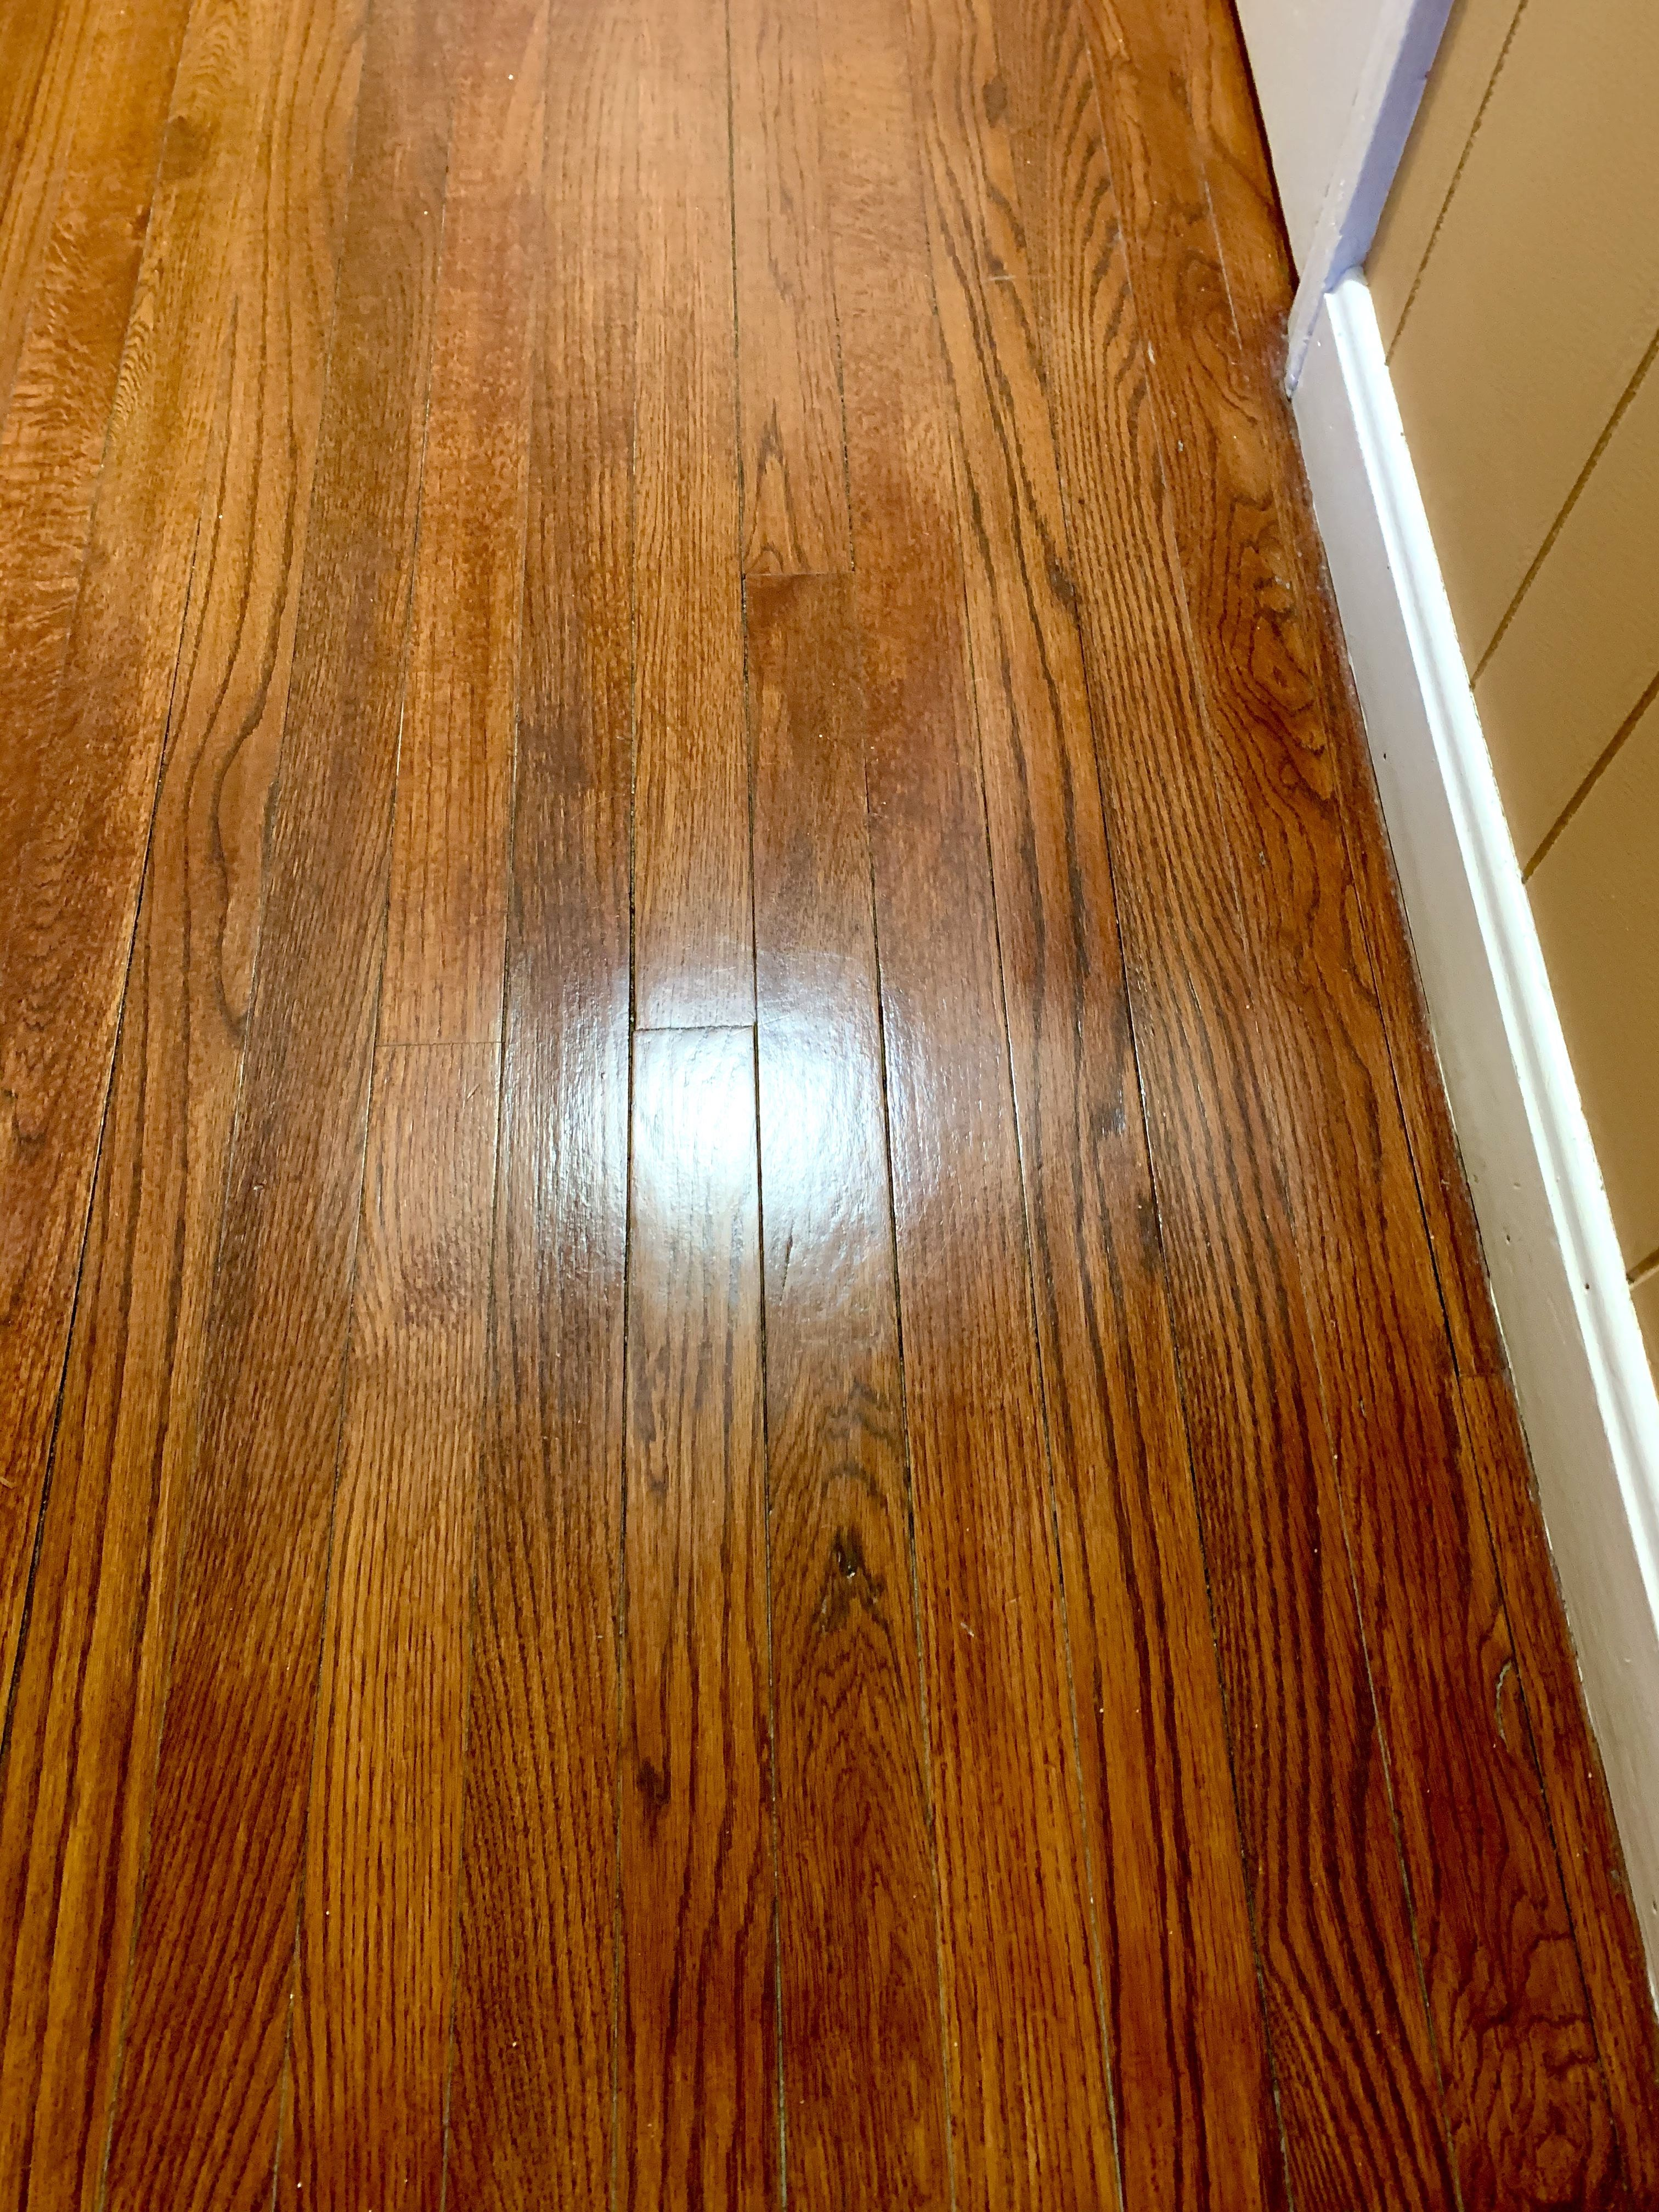 How To Really Make Your Hardwood Floors Shine Like Crazy A Cozy